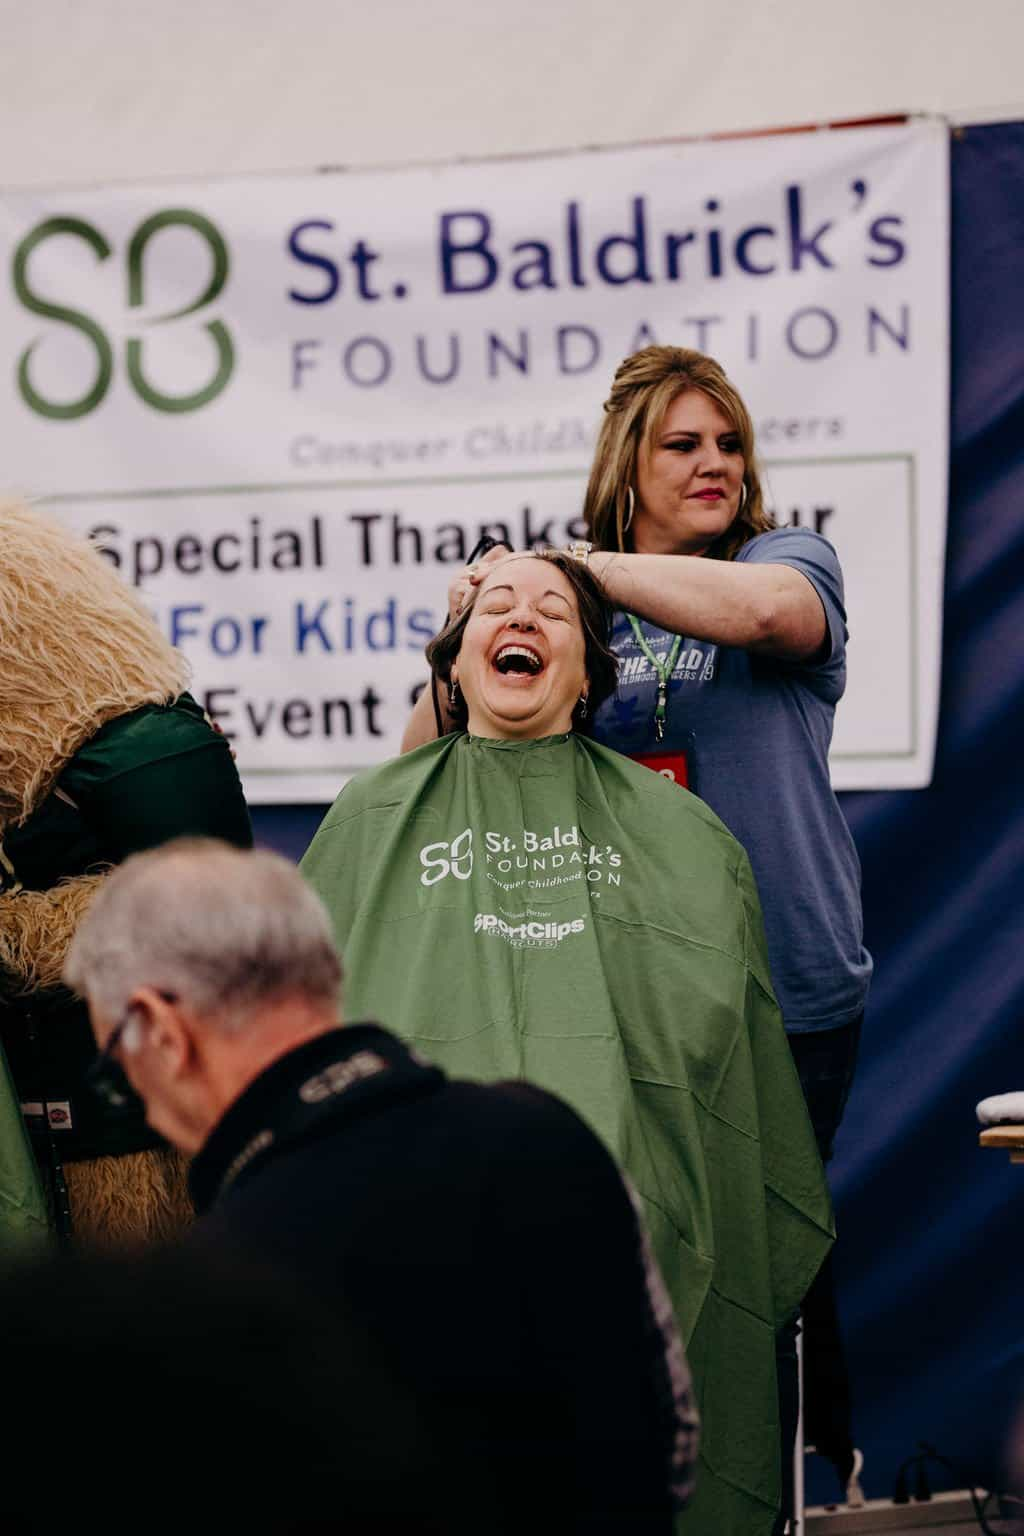 St. Baldricks | I bet you wouldn't shave your head 94